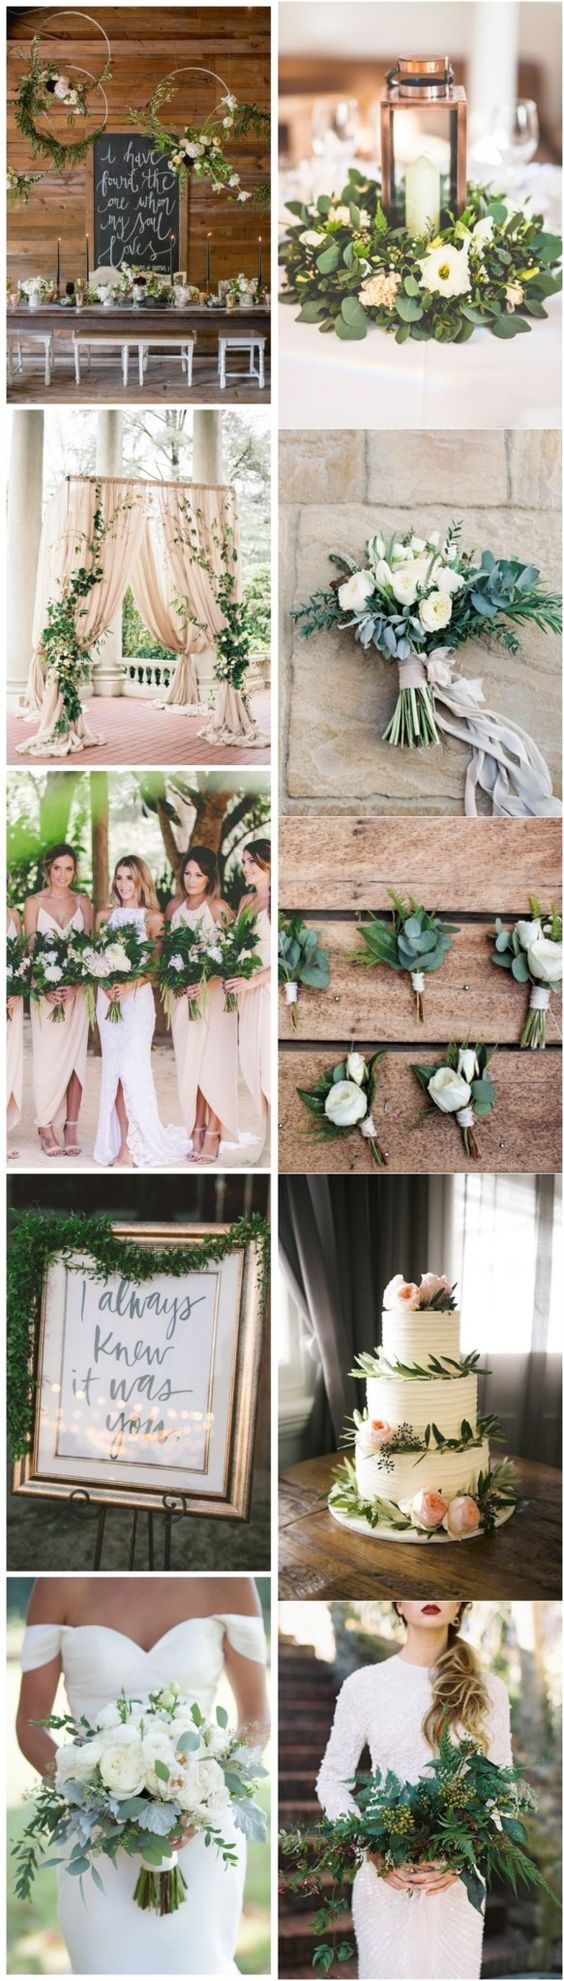 2019 Spring Wedding Color and Ideas is part of Spring wedding colors - Among all four seasons, spring is most romantic and everything comes to life  With green trees and flowers in blossom after the dull cold winter, spring wedding gives a touch of warmth and love  And below are some great spring wedding ideas I have compiled and you can get inspired from it